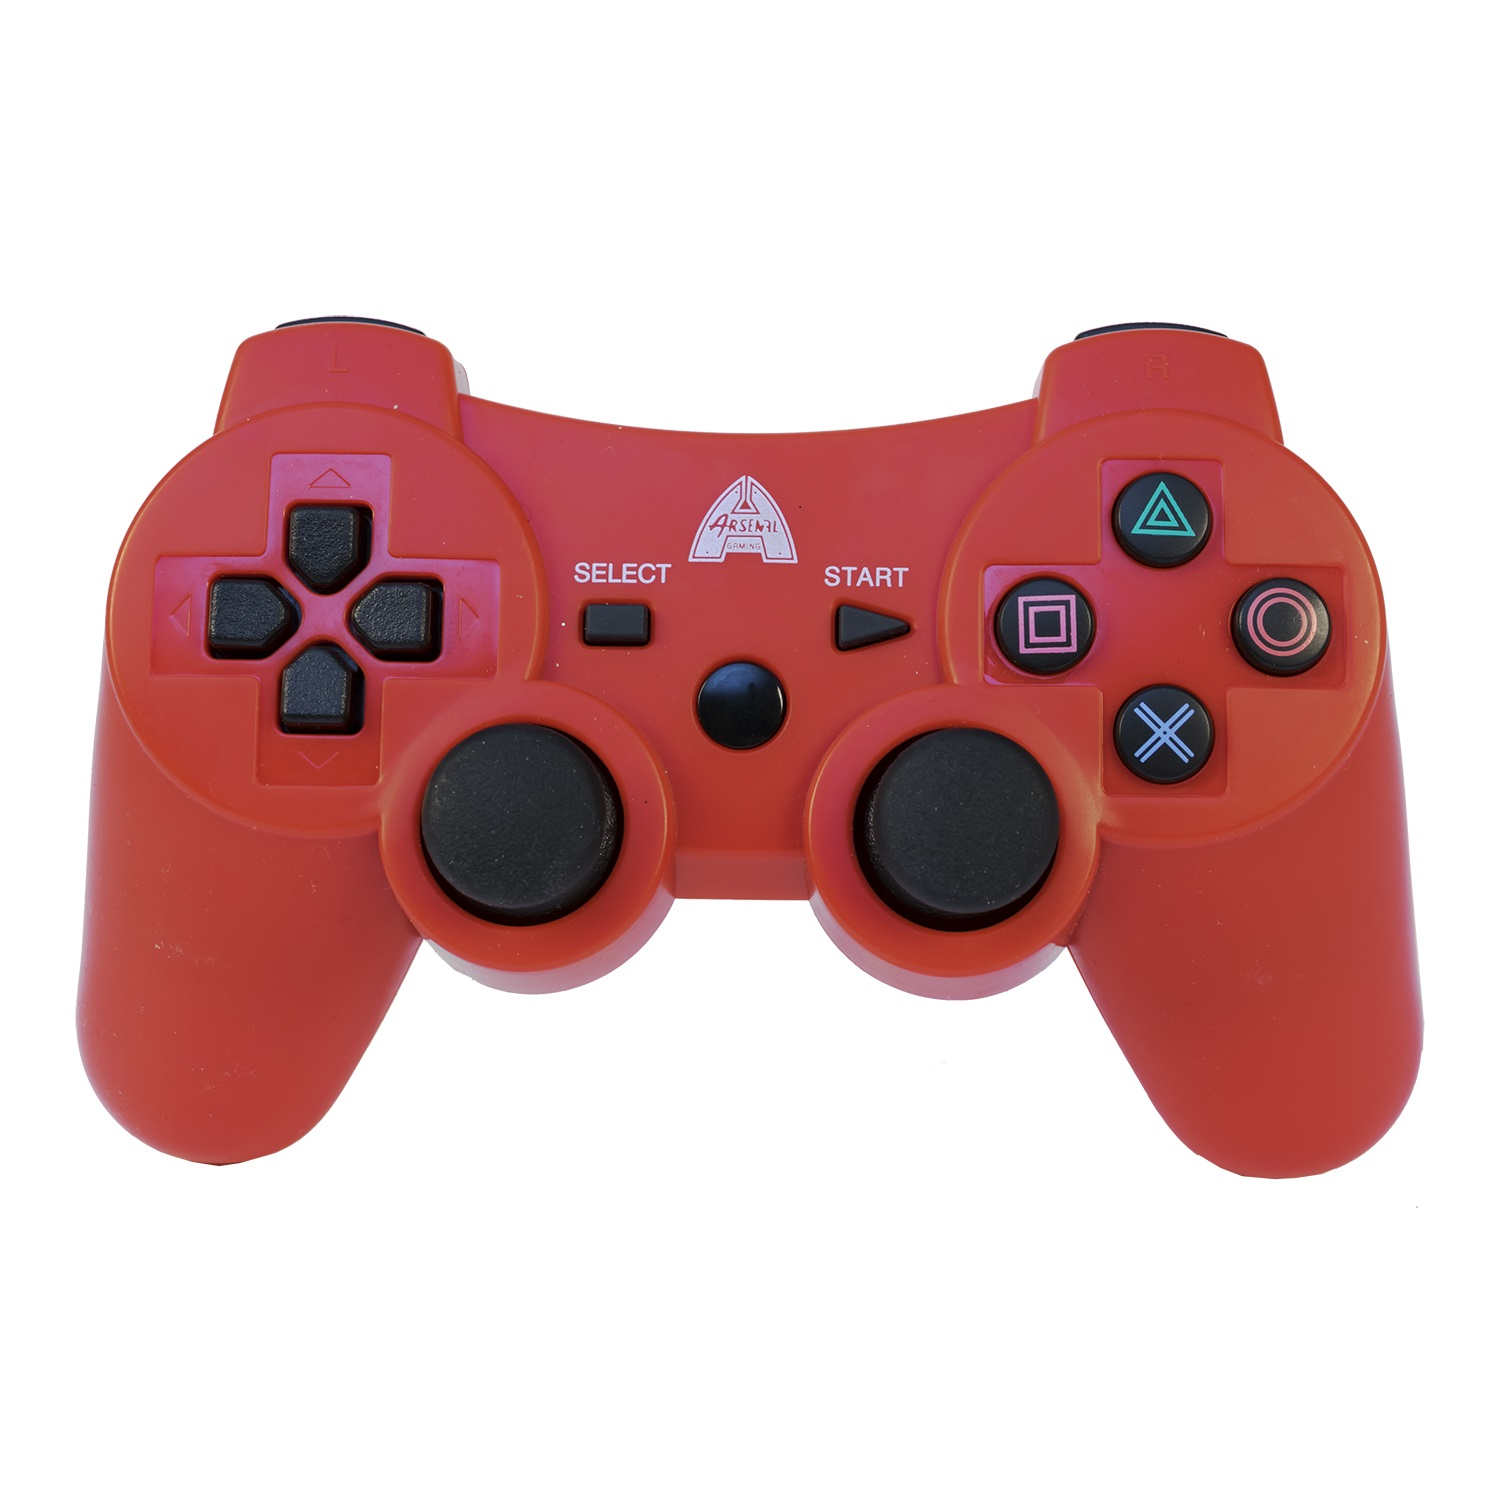 Arsenal Gaming AP3CON4R PS3 Bluetooth Controller Pro with Rechargeable Battery, Red (PS3)